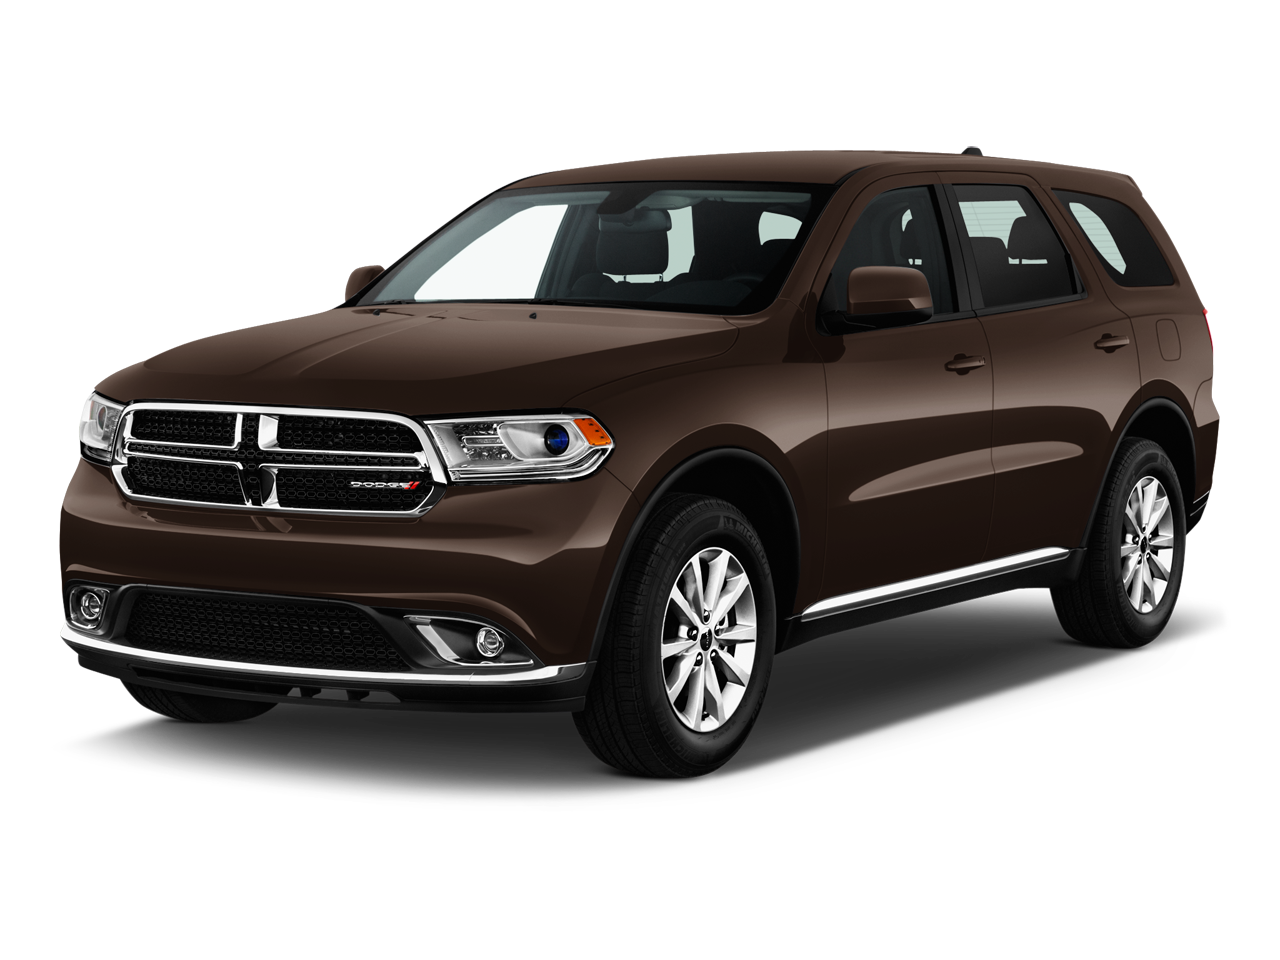 transmission for dodge durango 2018 dodge reviews. Black Bedroom Furniture Sets. Home Design Ideas